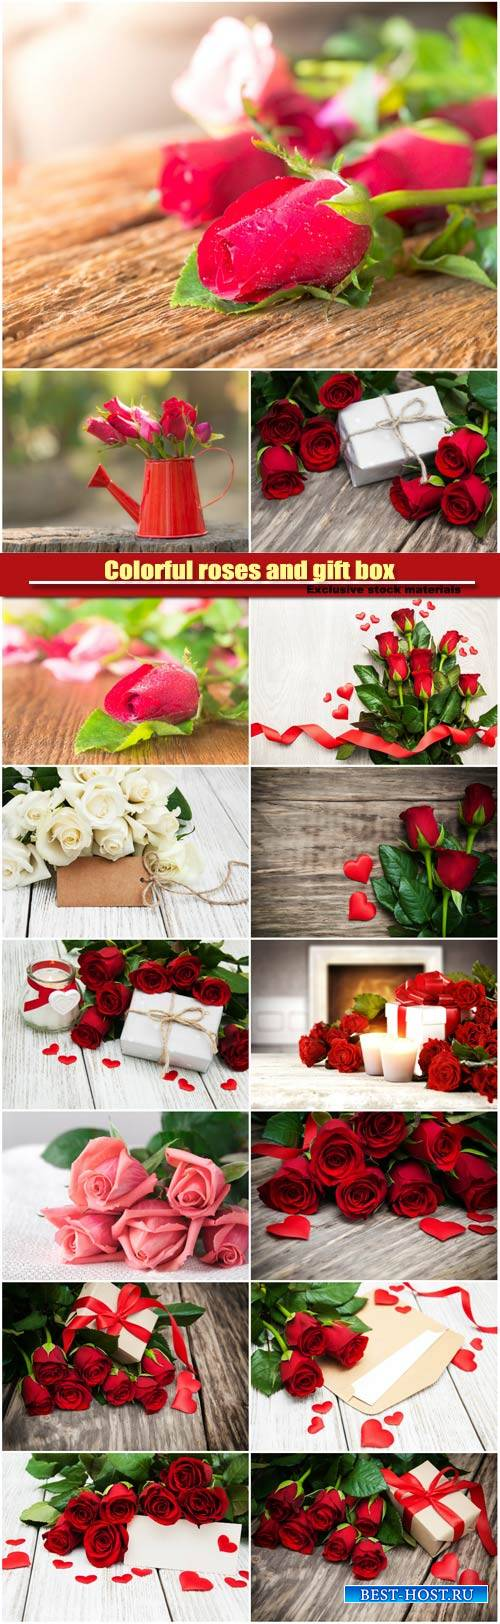 Colorful roses and gift box